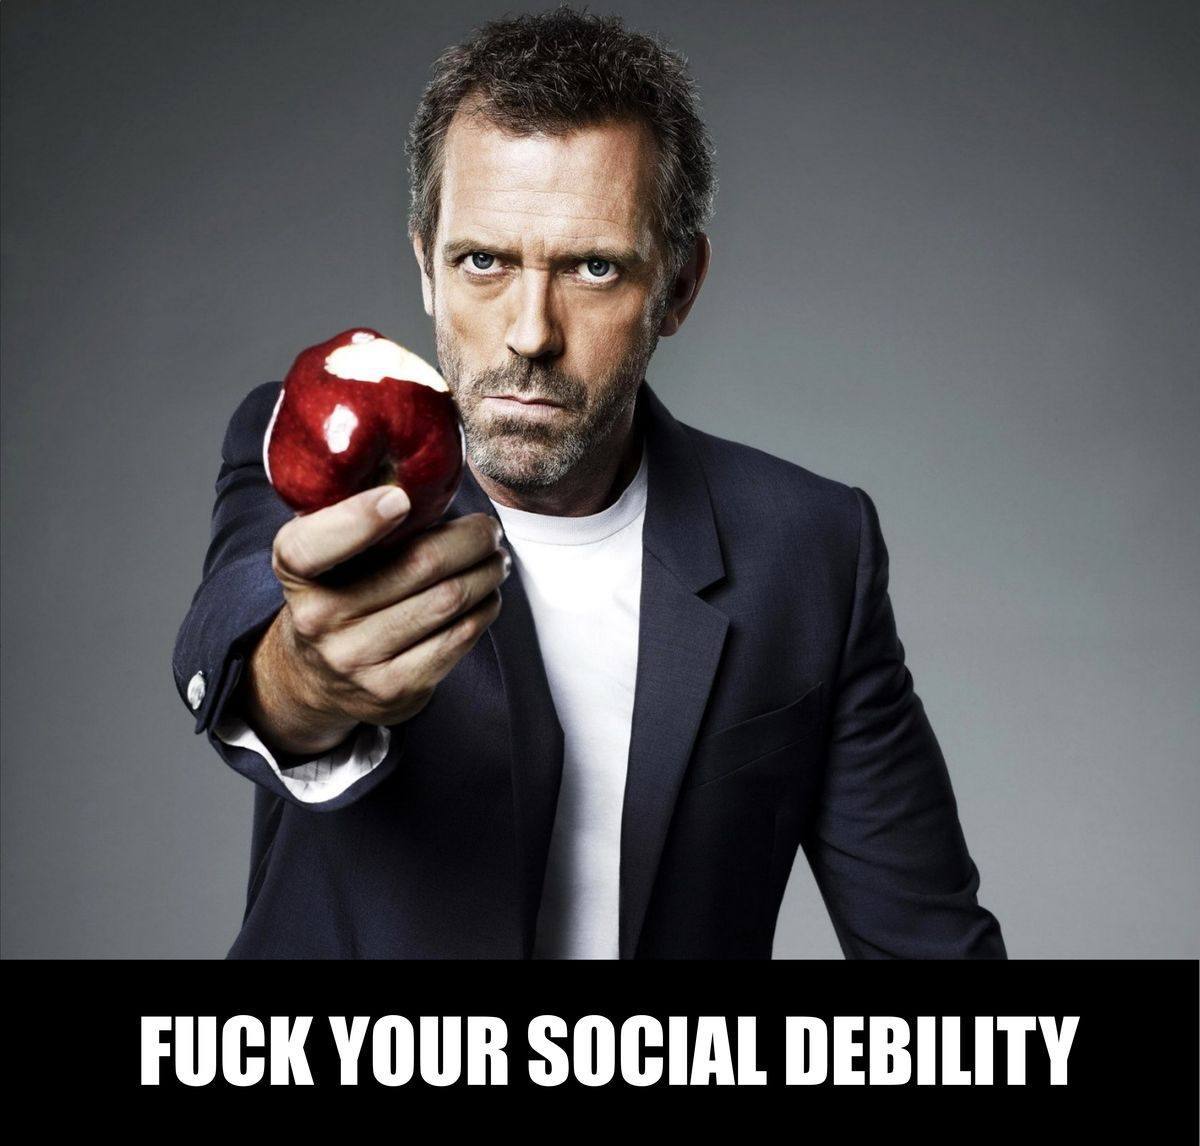 THINKING IN STYLE: Dr. House